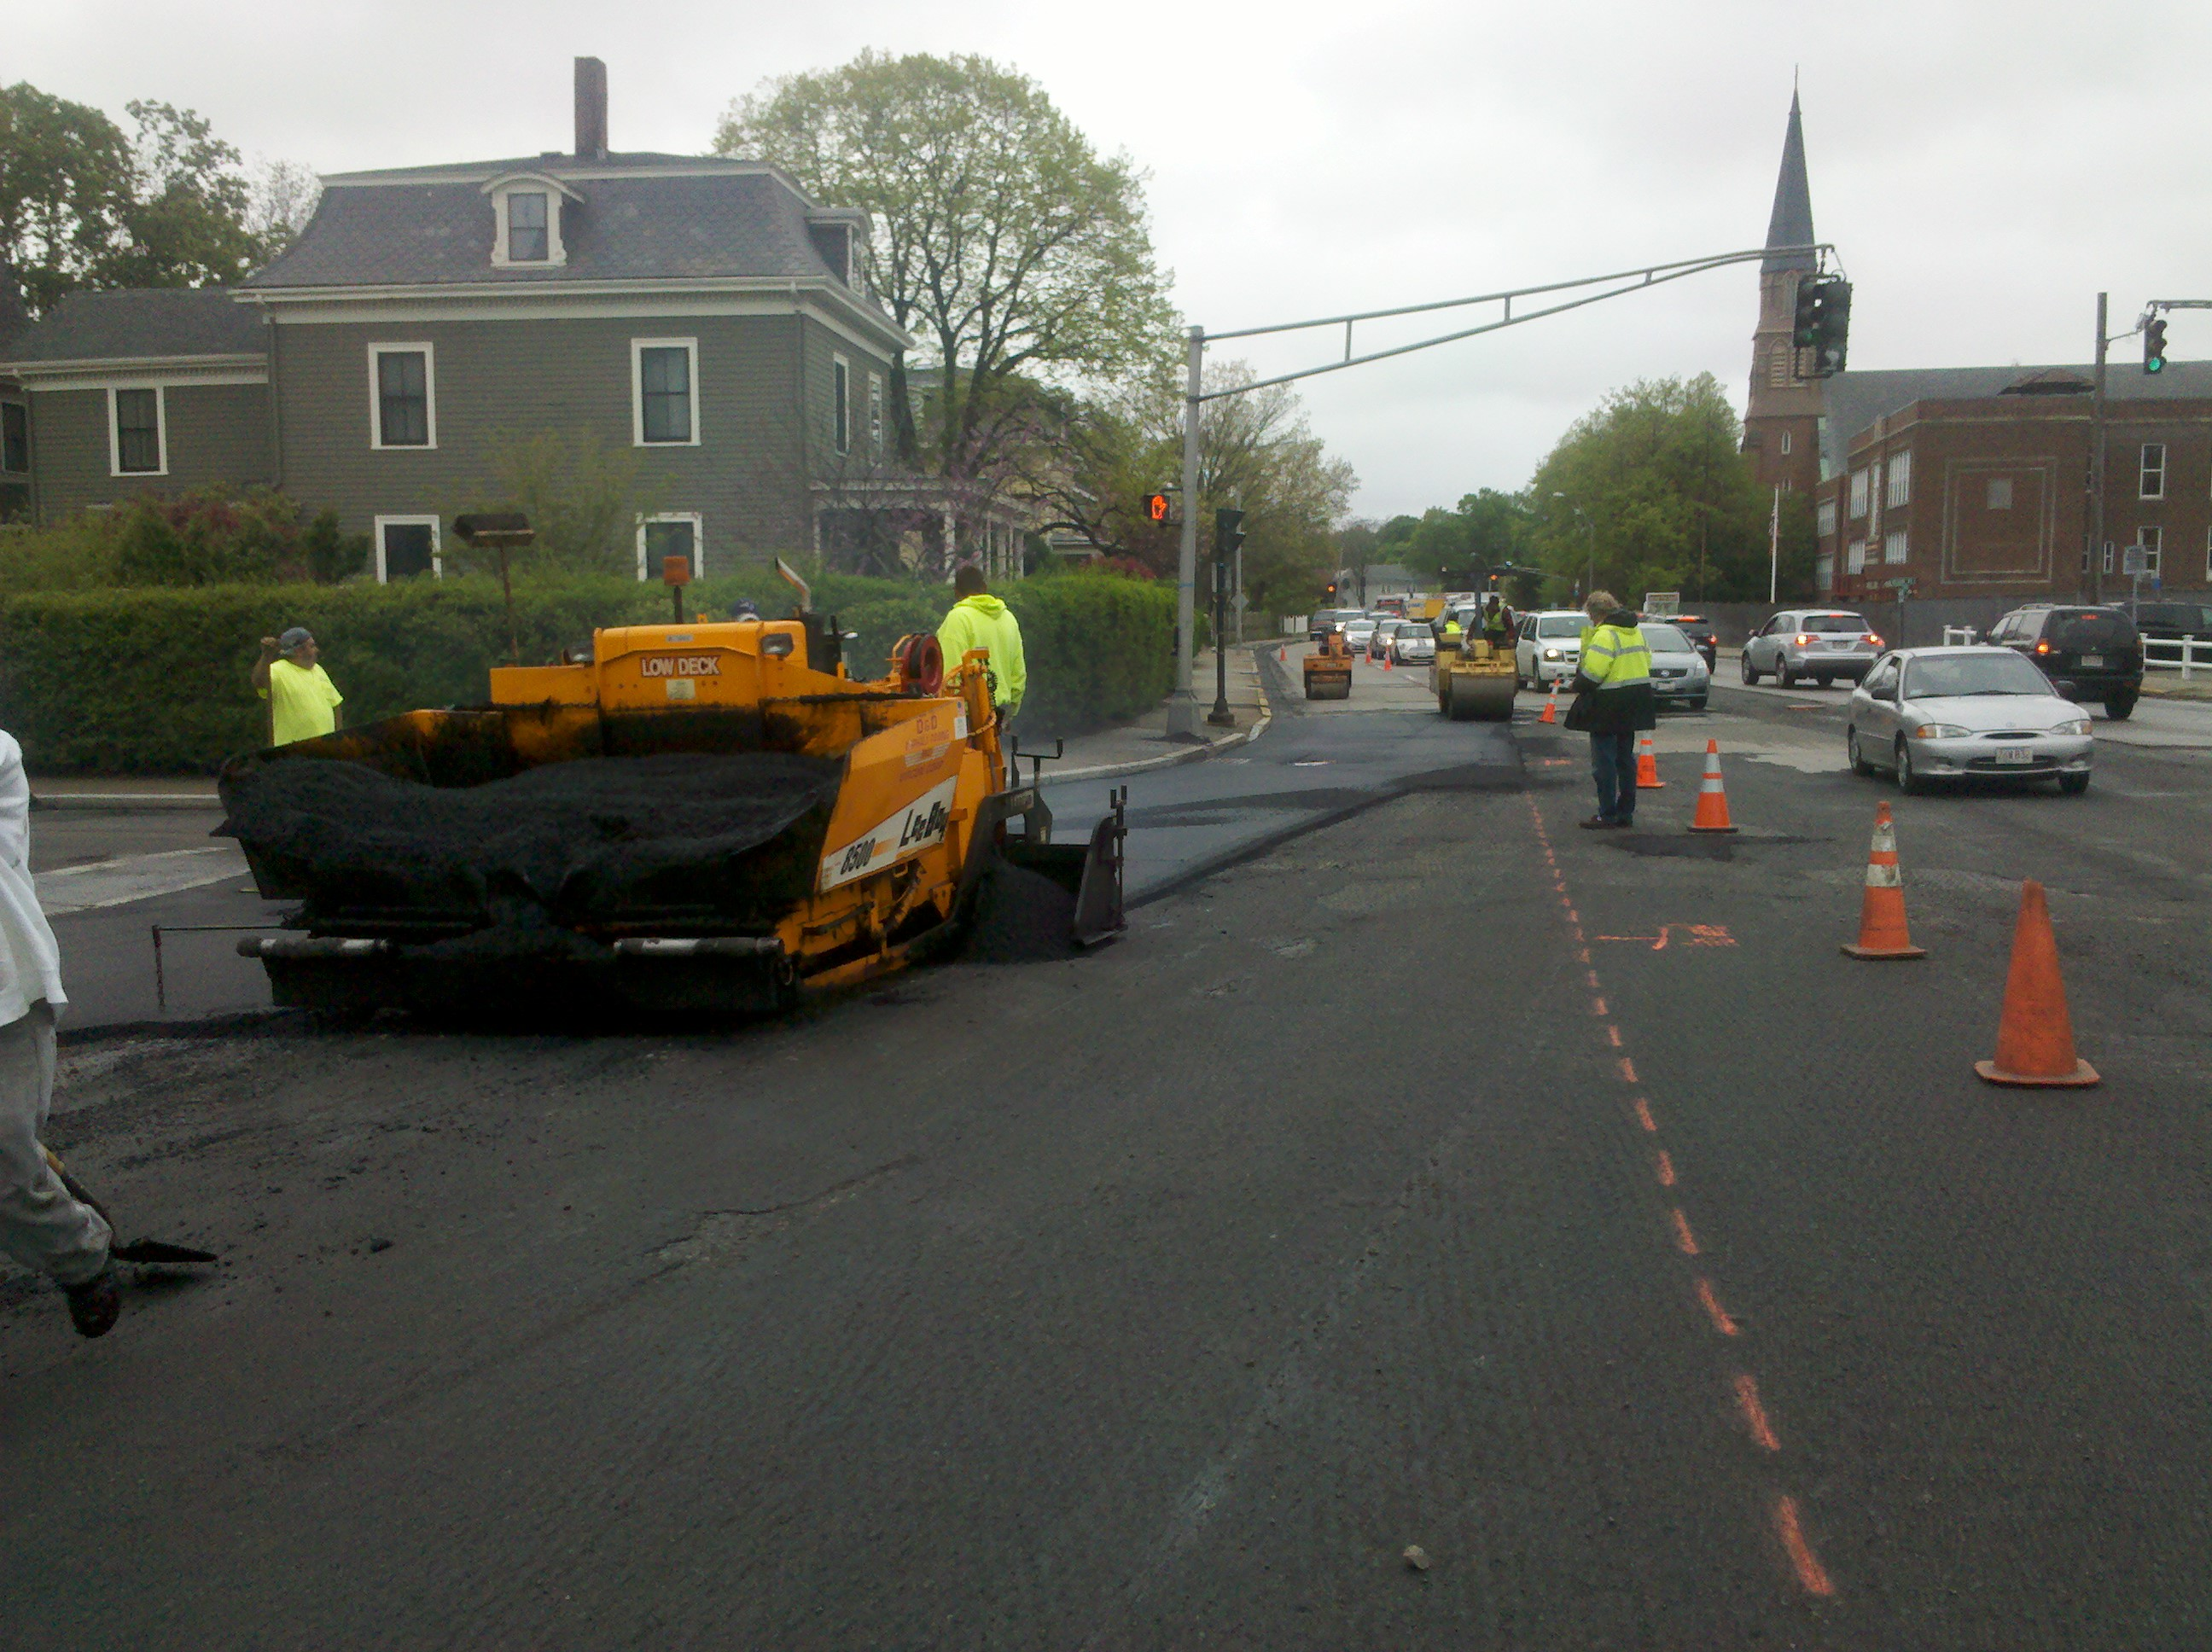 A job on Washington Street in Newton, M.A.